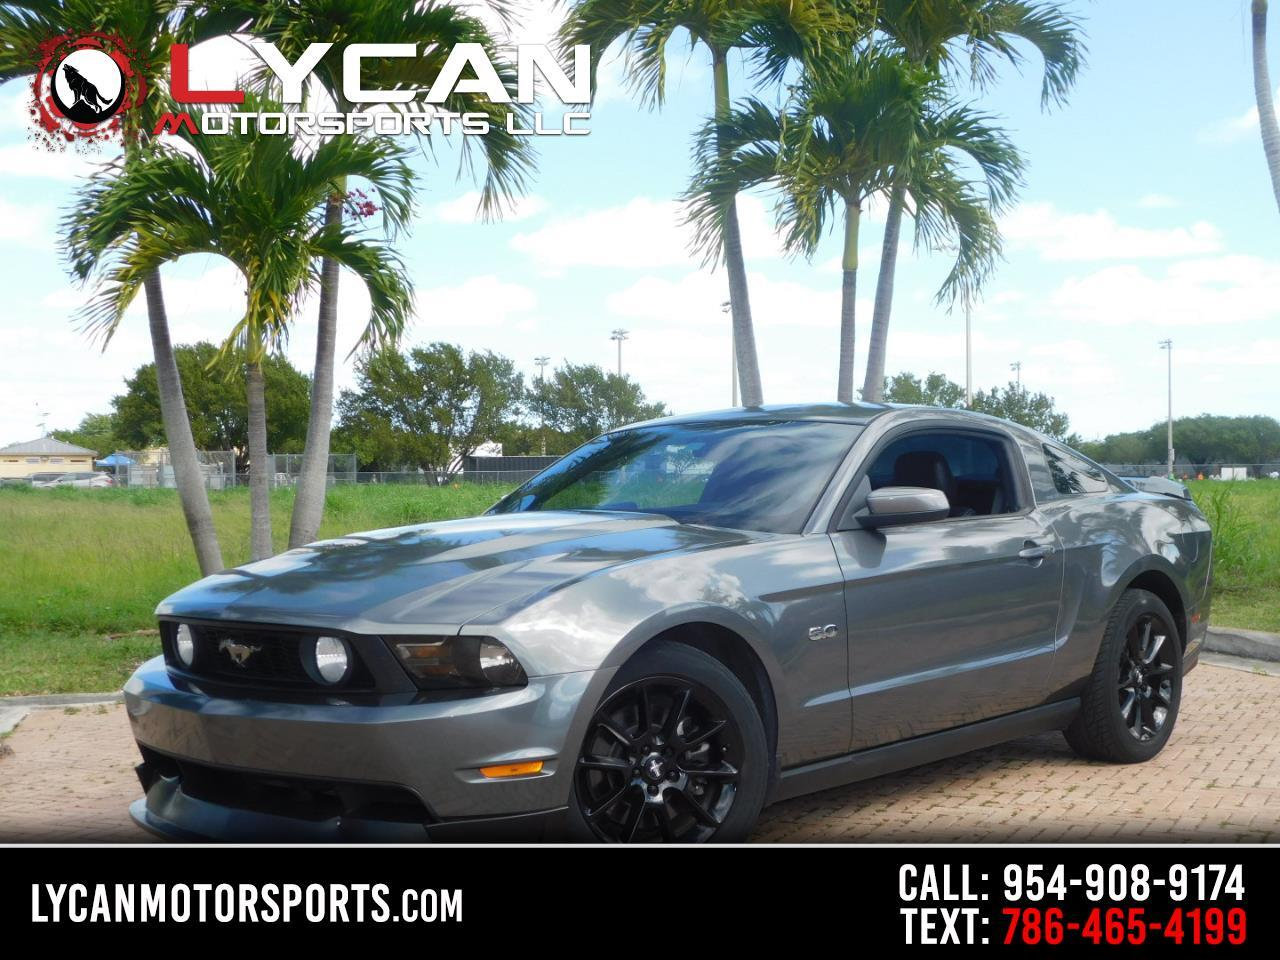 Ford Mustang 2dr Cpe GT Premium 2011